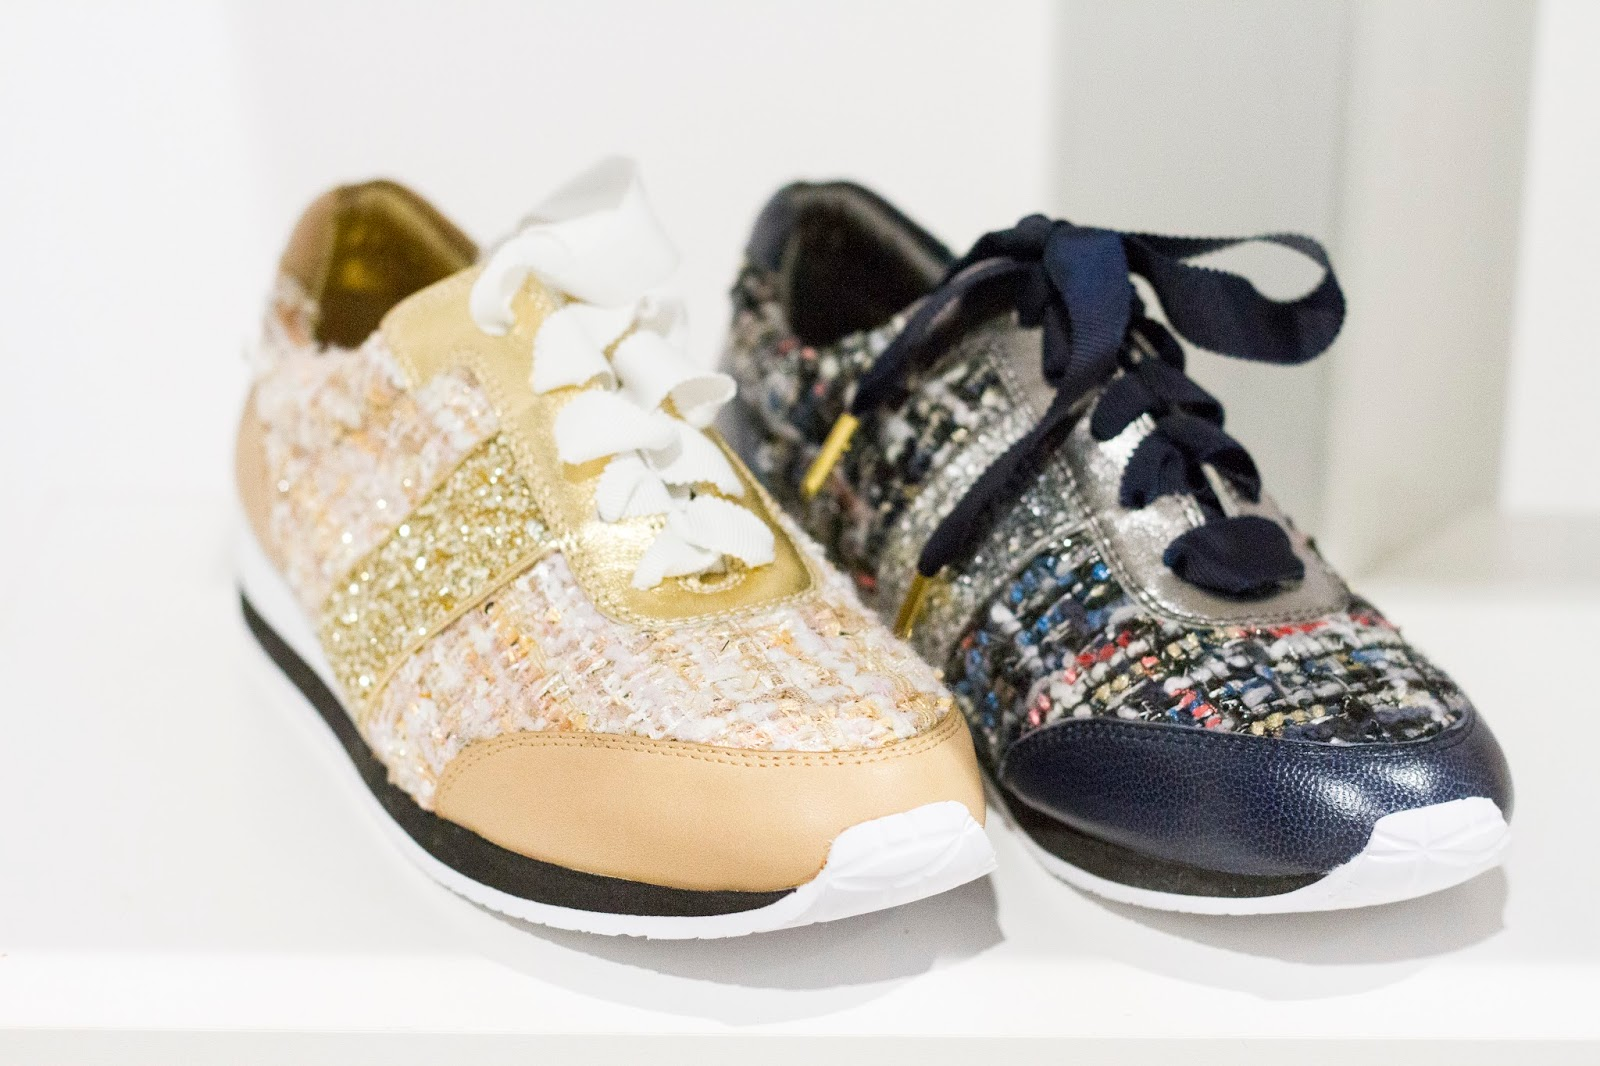 kate spade new york fall 2015 shoe collection fn platform tweed glitter sneakers